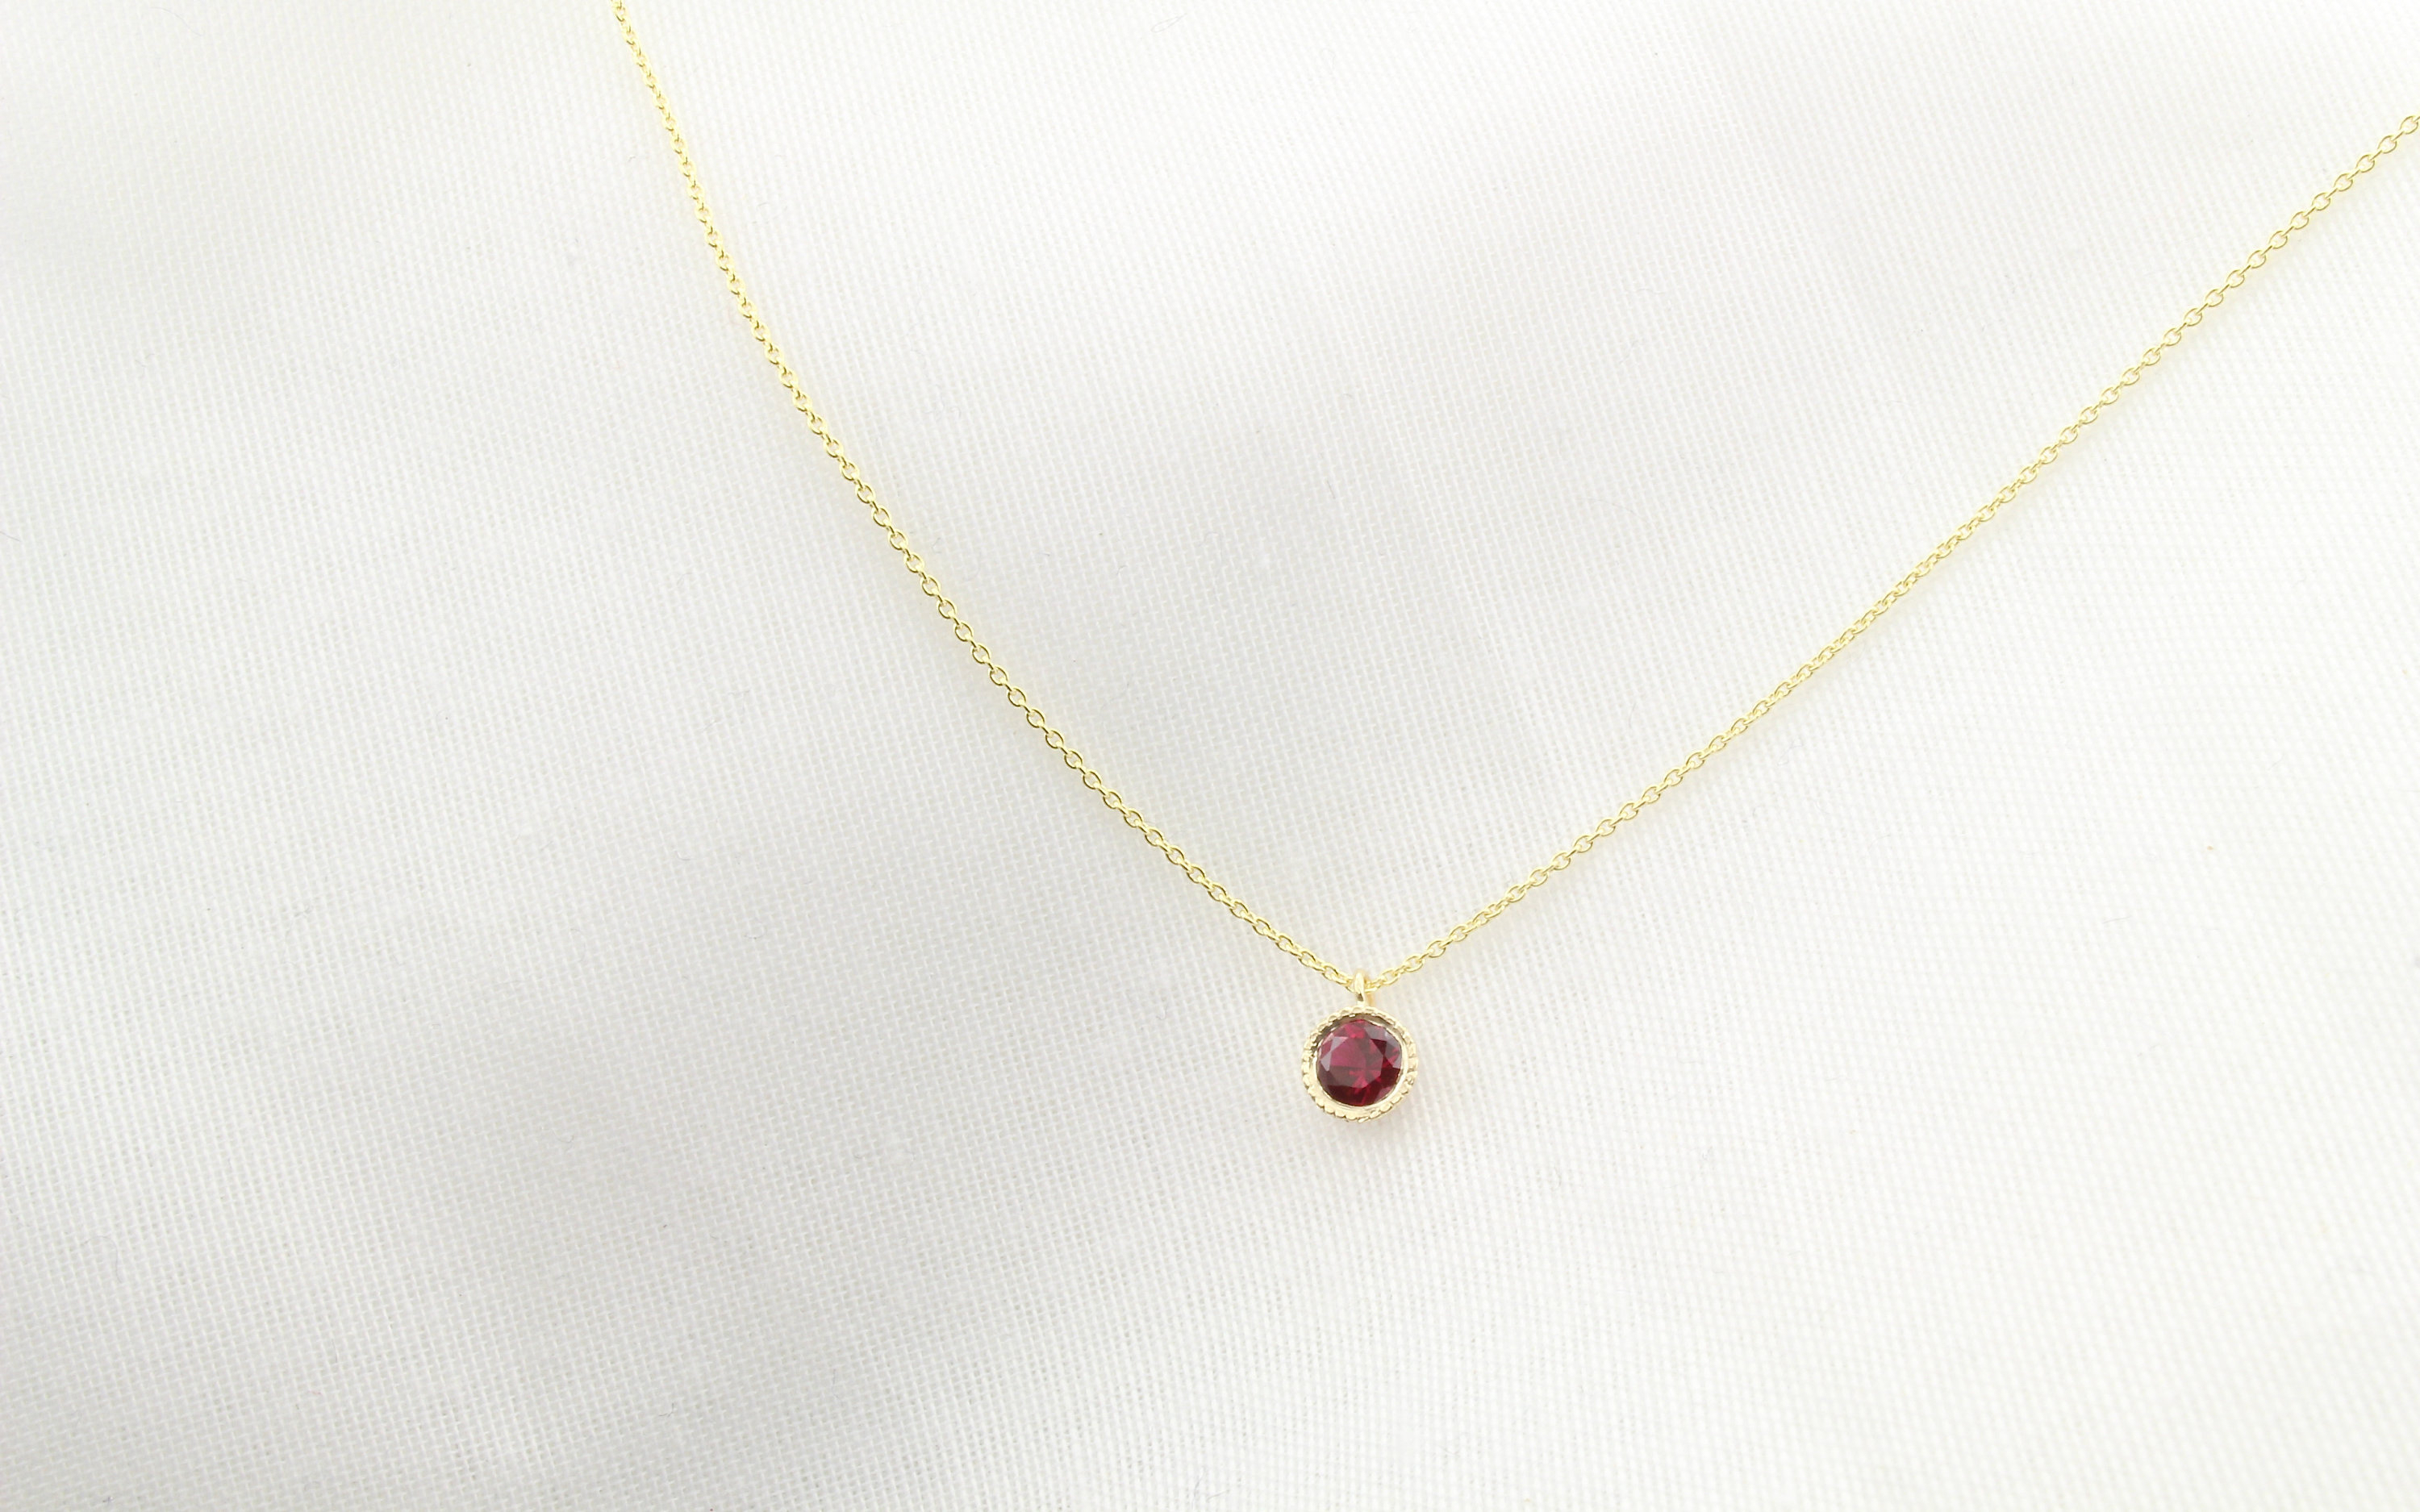 Delicate Ruby Gold Necklace, Solid Gold Necklace, 14K Dainty Droplet  Necklace, 14K Gold Necklace, Graduation Gift, Brookemicheledesigns Pertaining To Most Up To Date November Droplet Pendant Necklaces (Gallery 16 of 25)